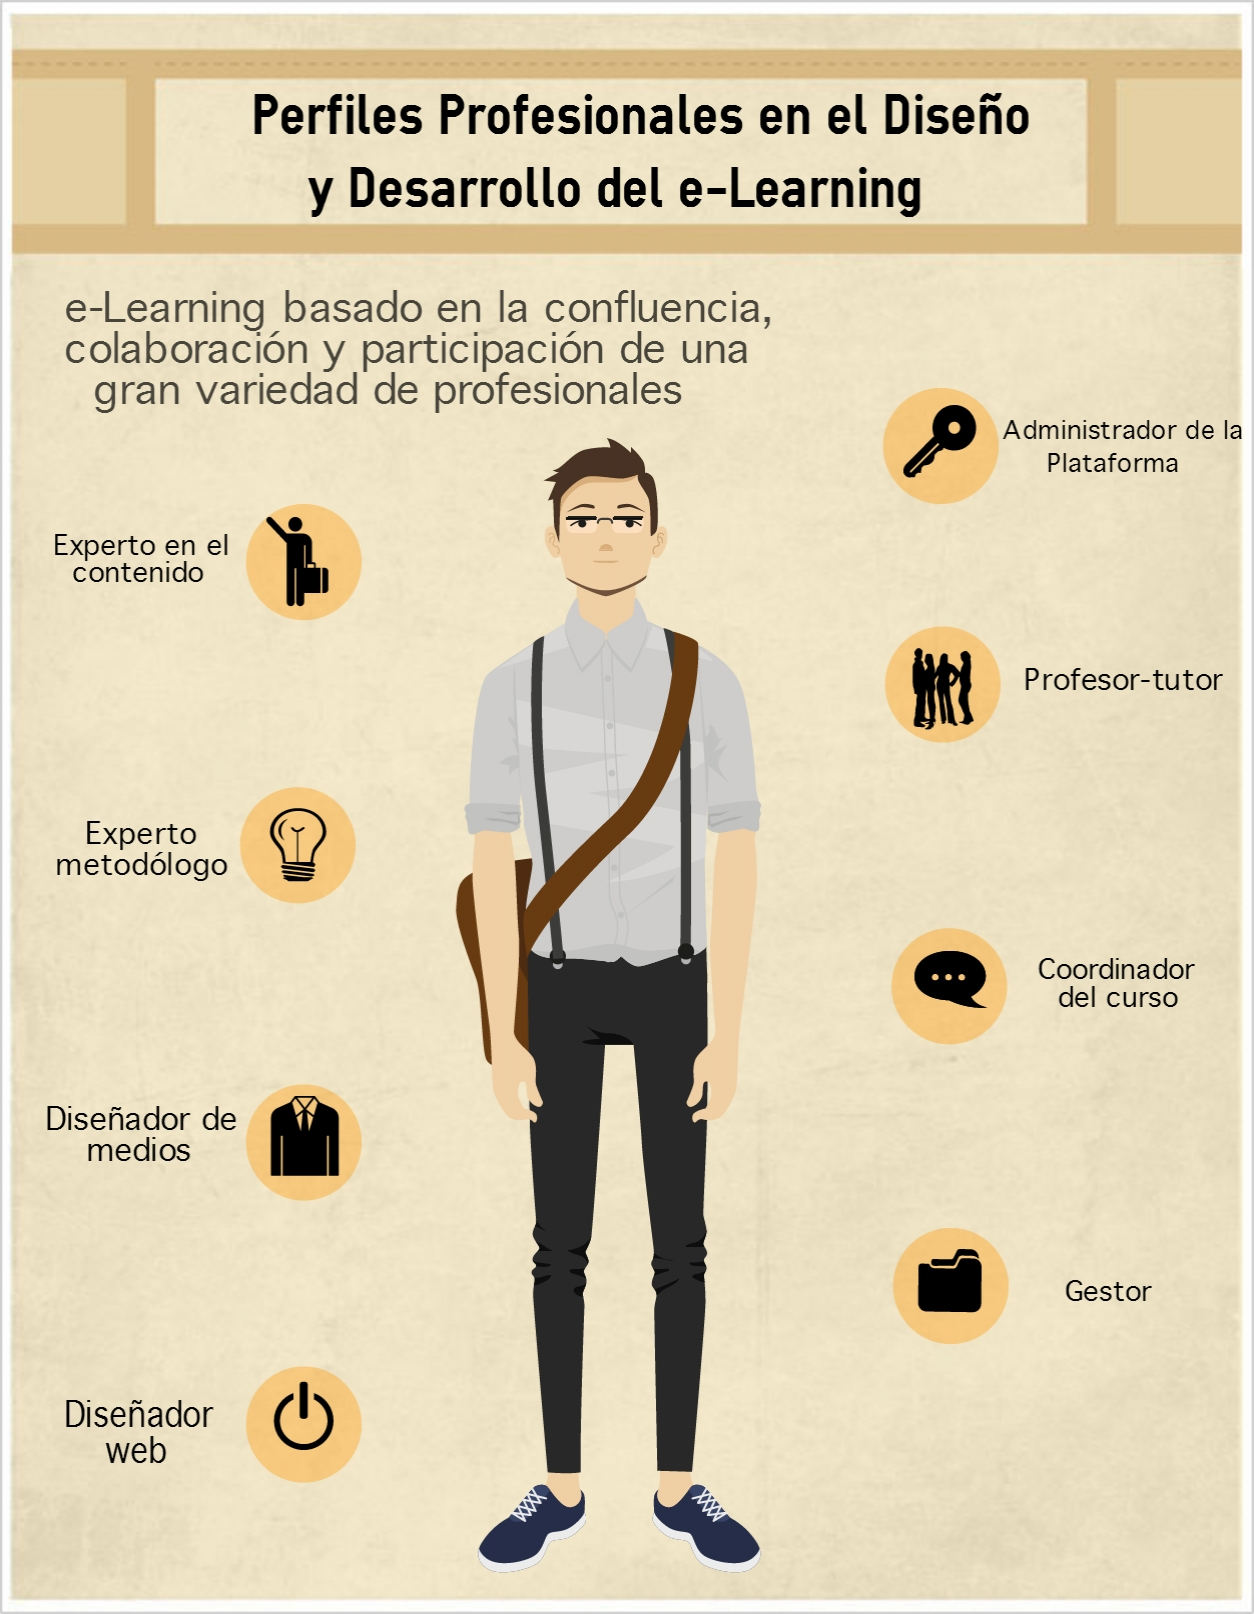 Competencias Profesionales para e-Learning